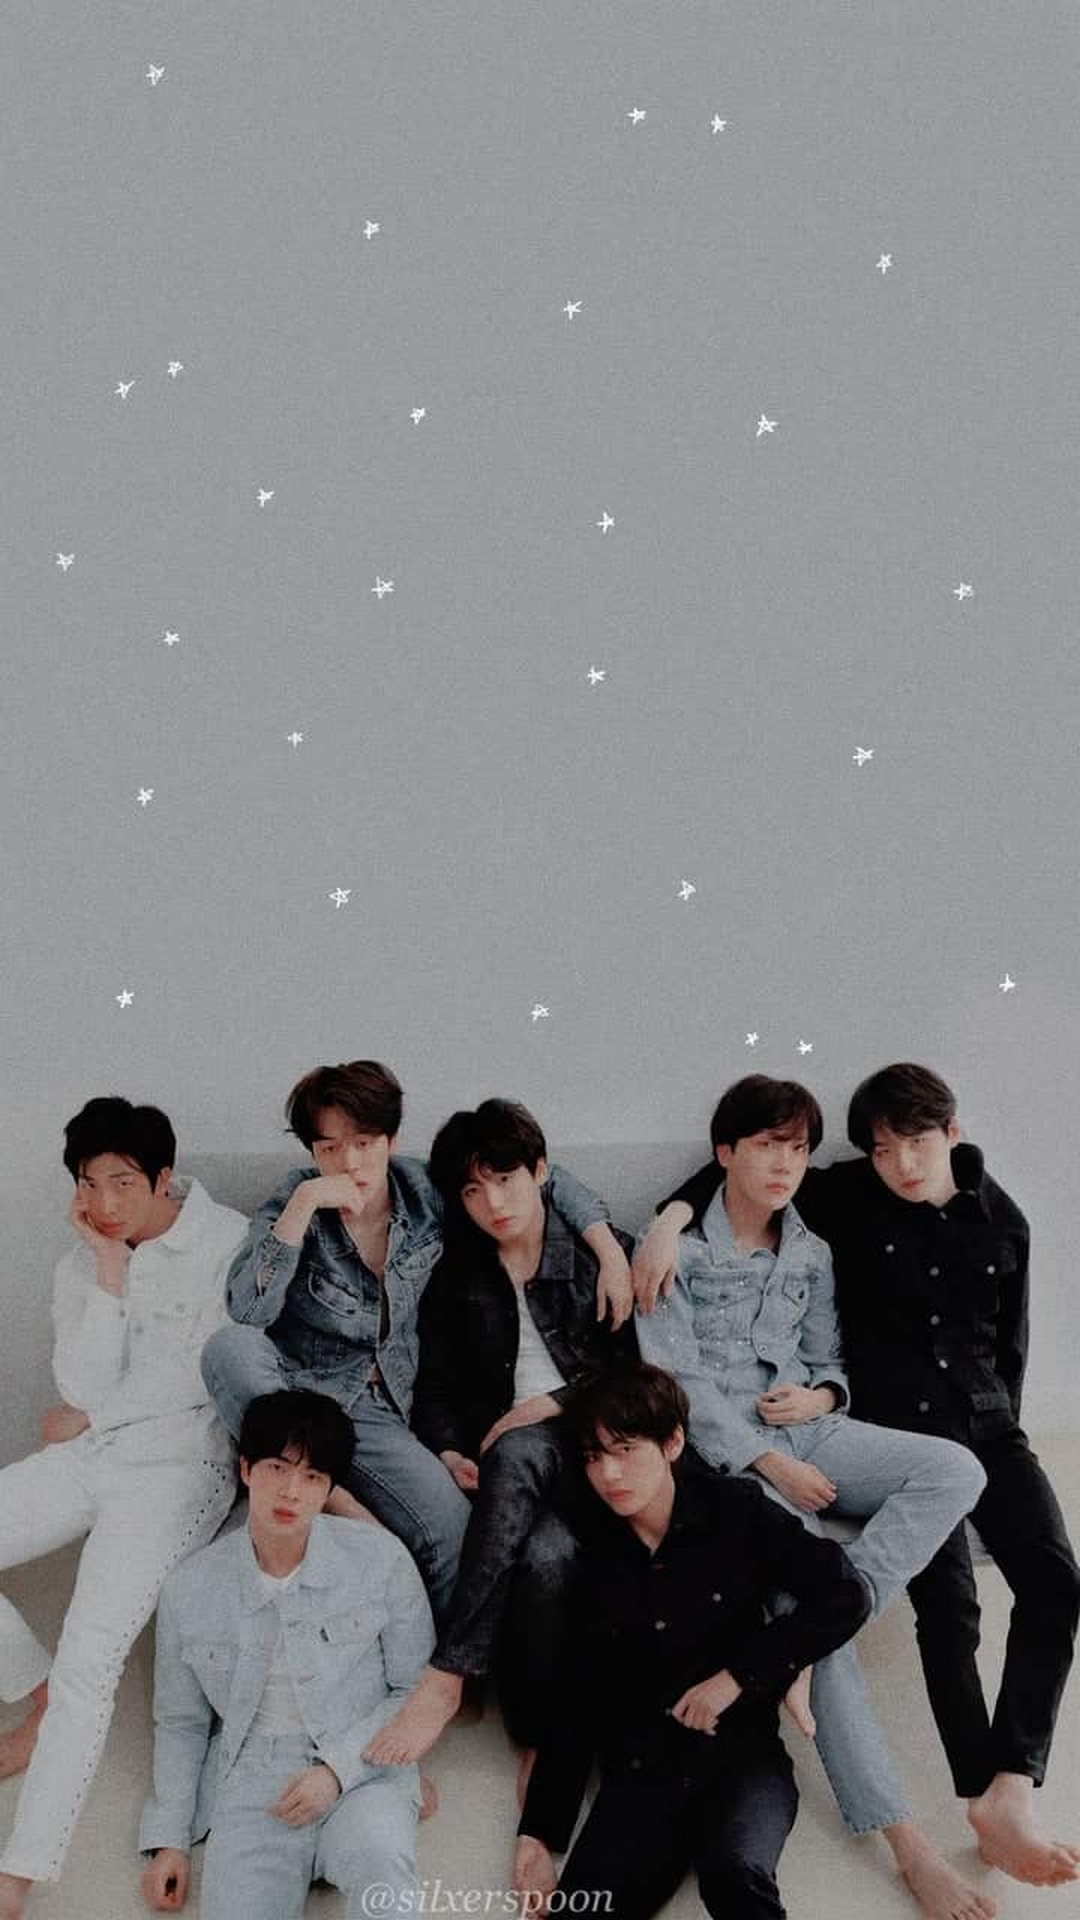 BTS Wallpaper For Phone 2019 Live Wallpaper HD